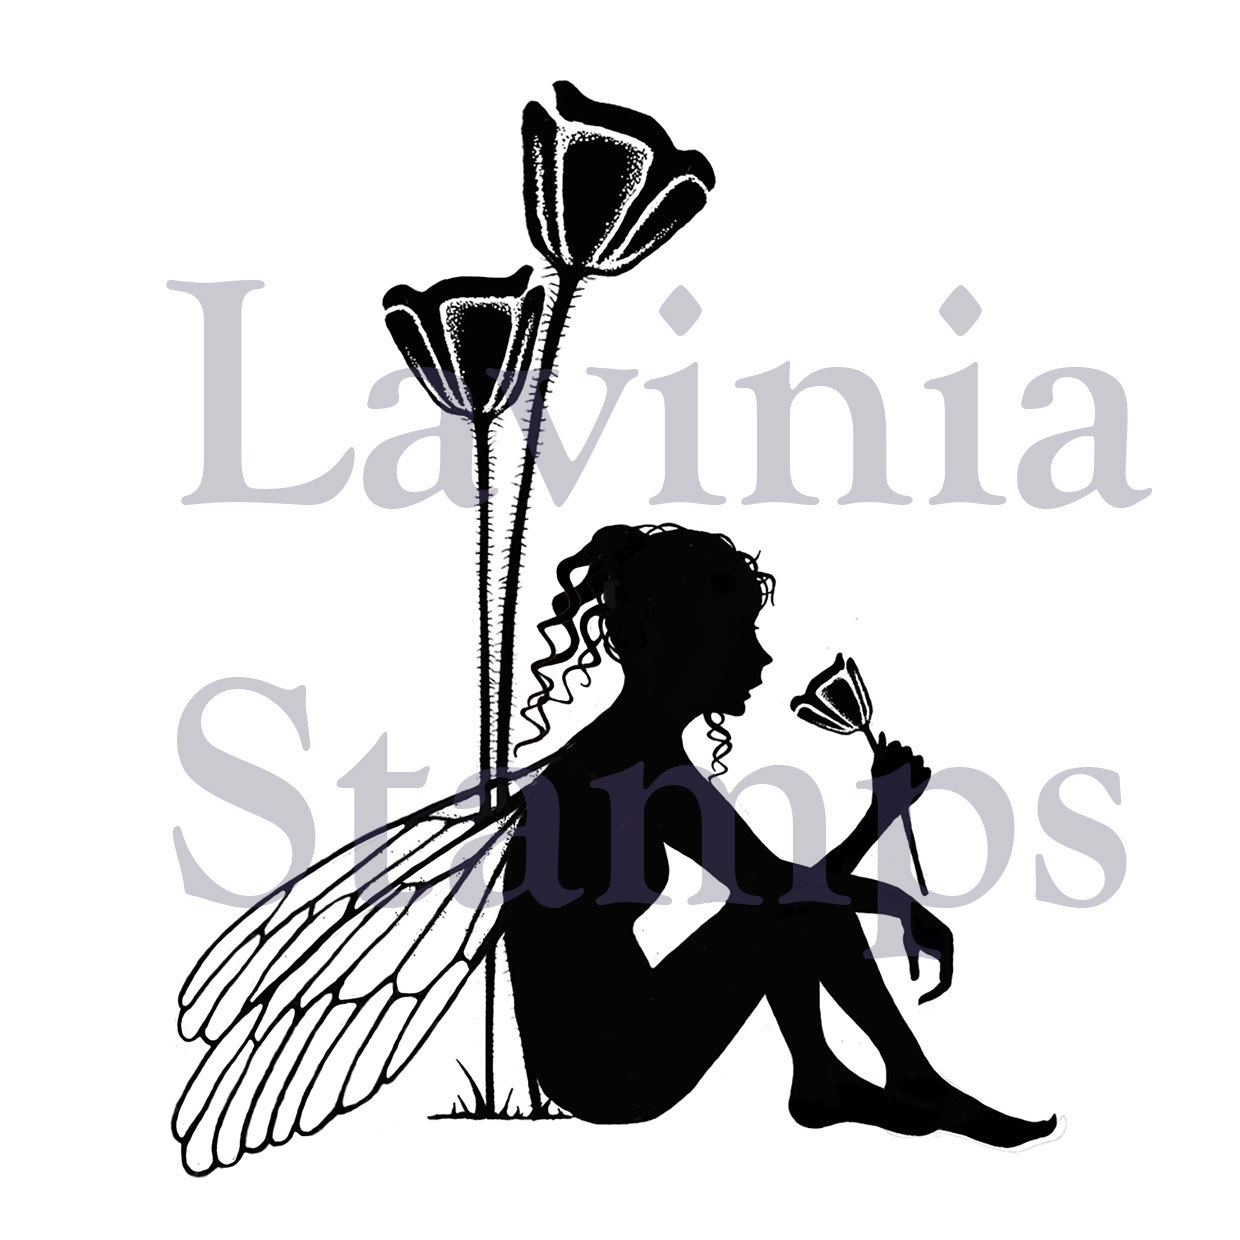 1240x1240 Lavinia Moments Like These Stamp